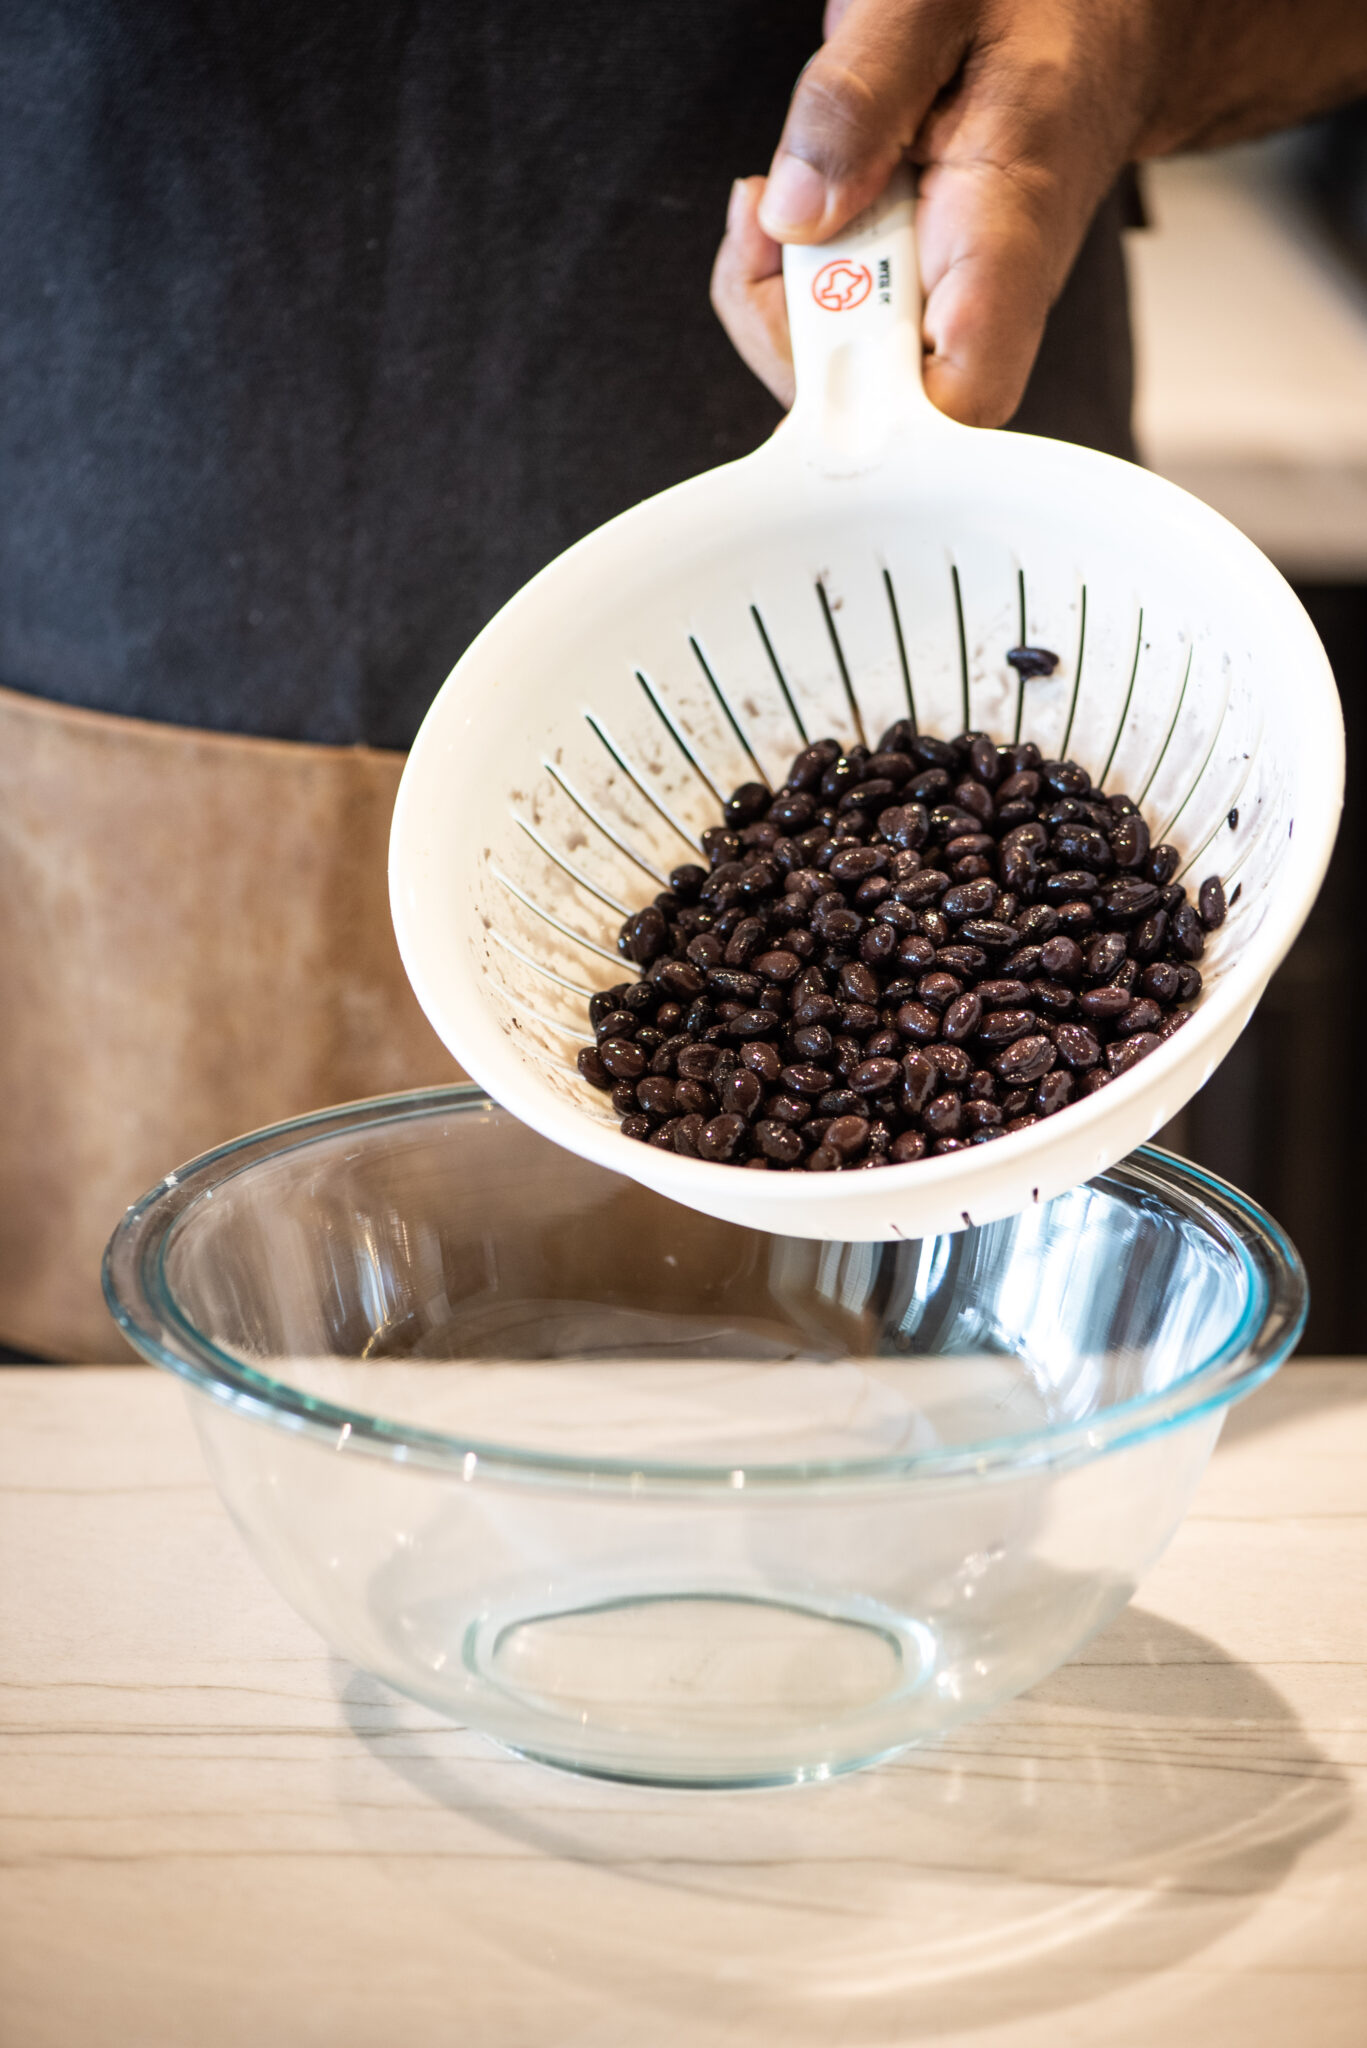 Draining canned black beans